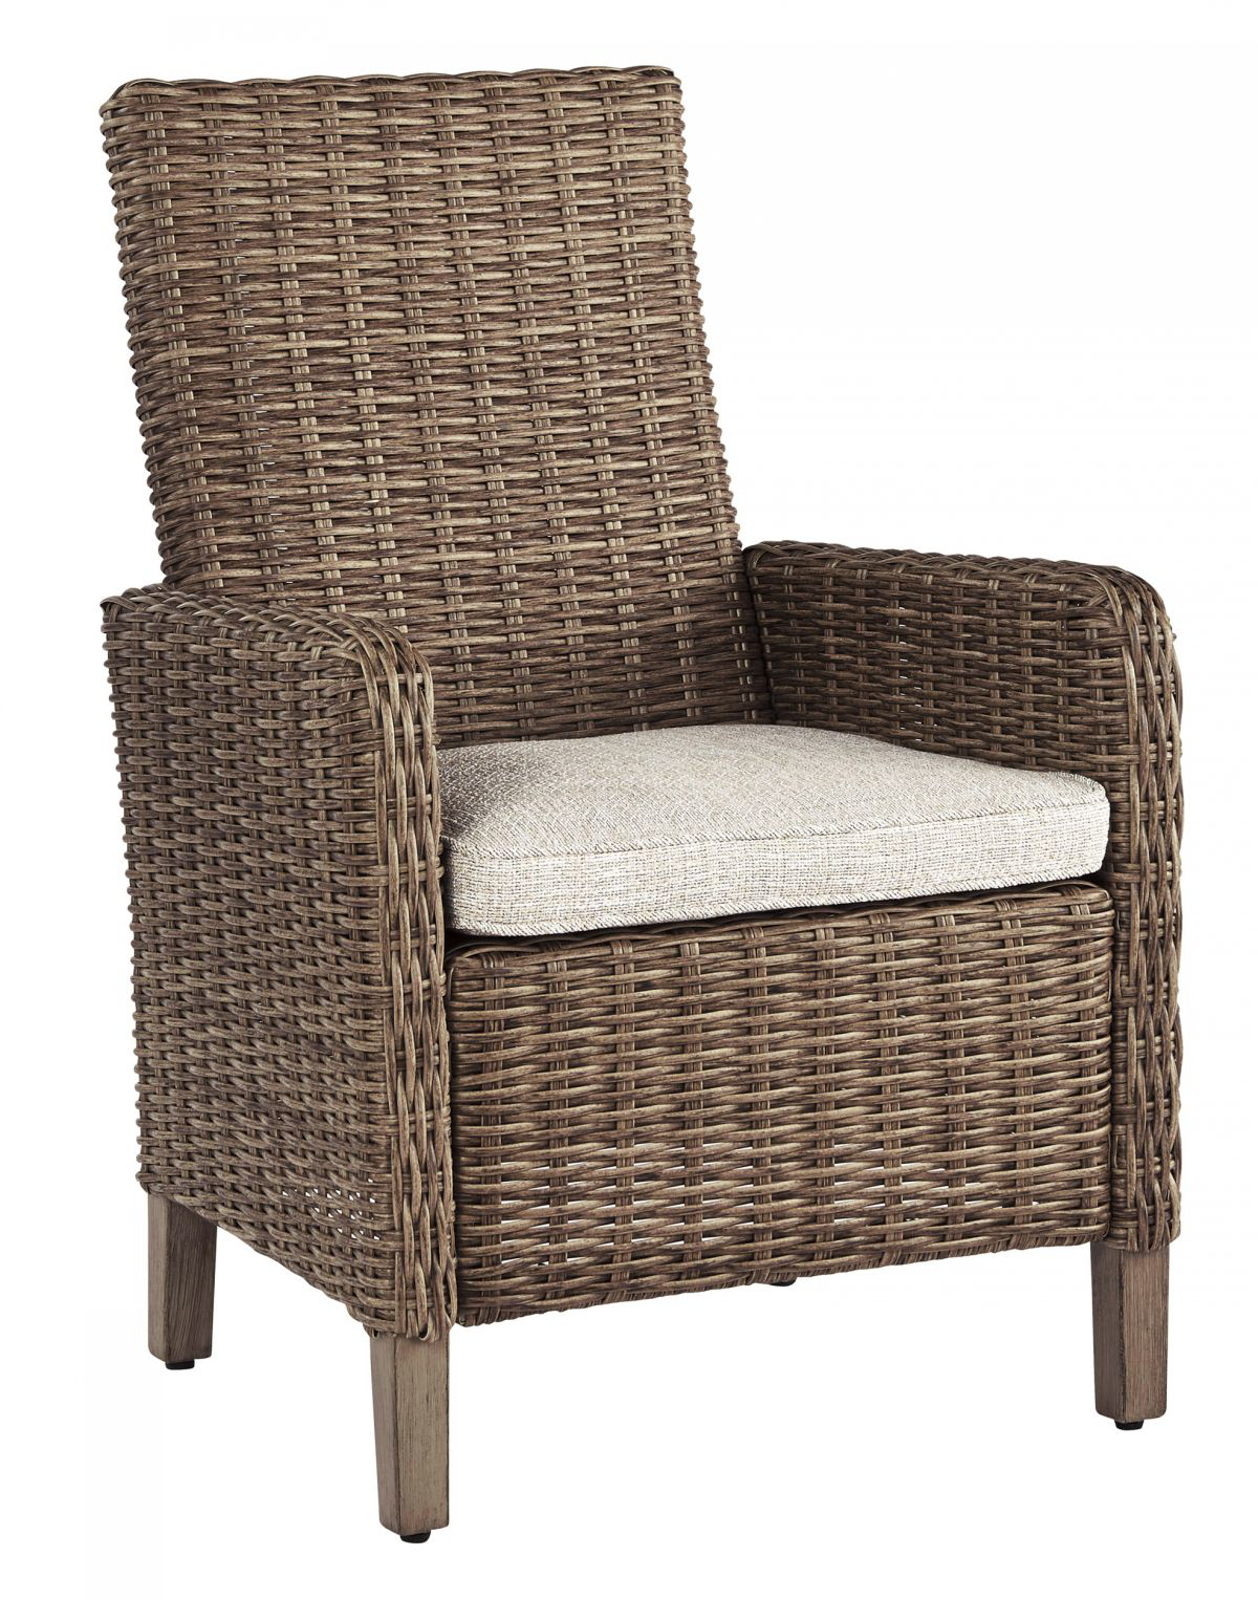 Picture of Beachcroft Patio Chair